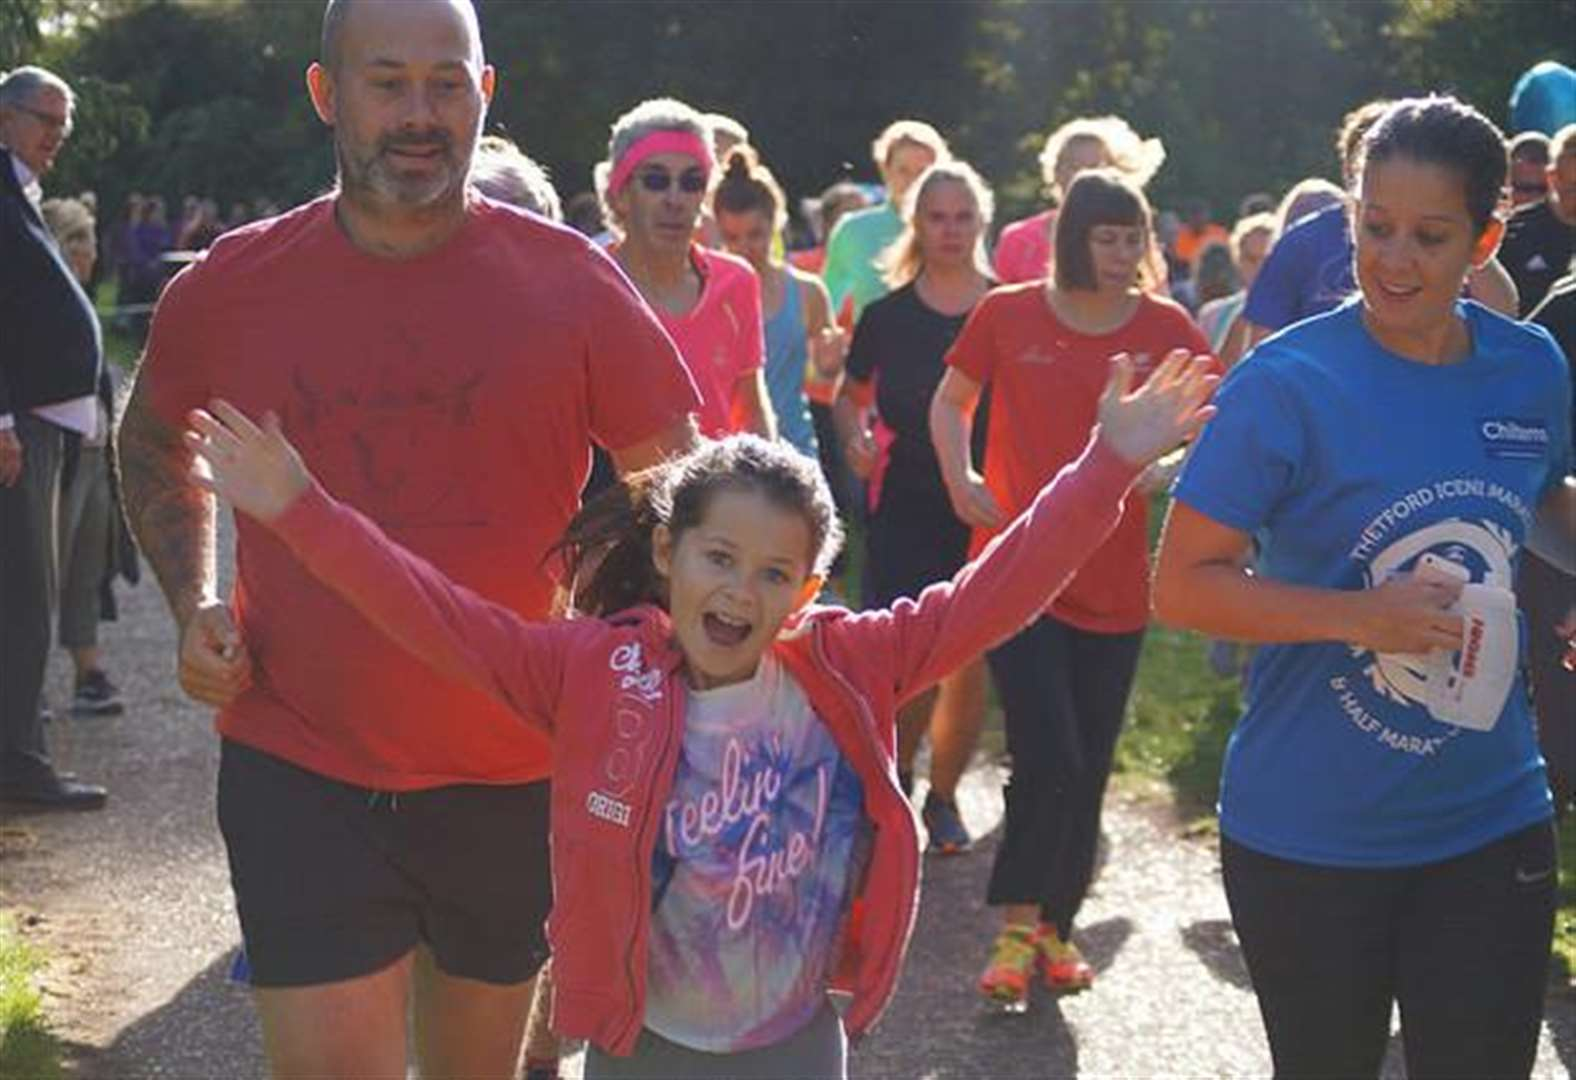 Thetford parkrun sees record numbers to celebrate 300